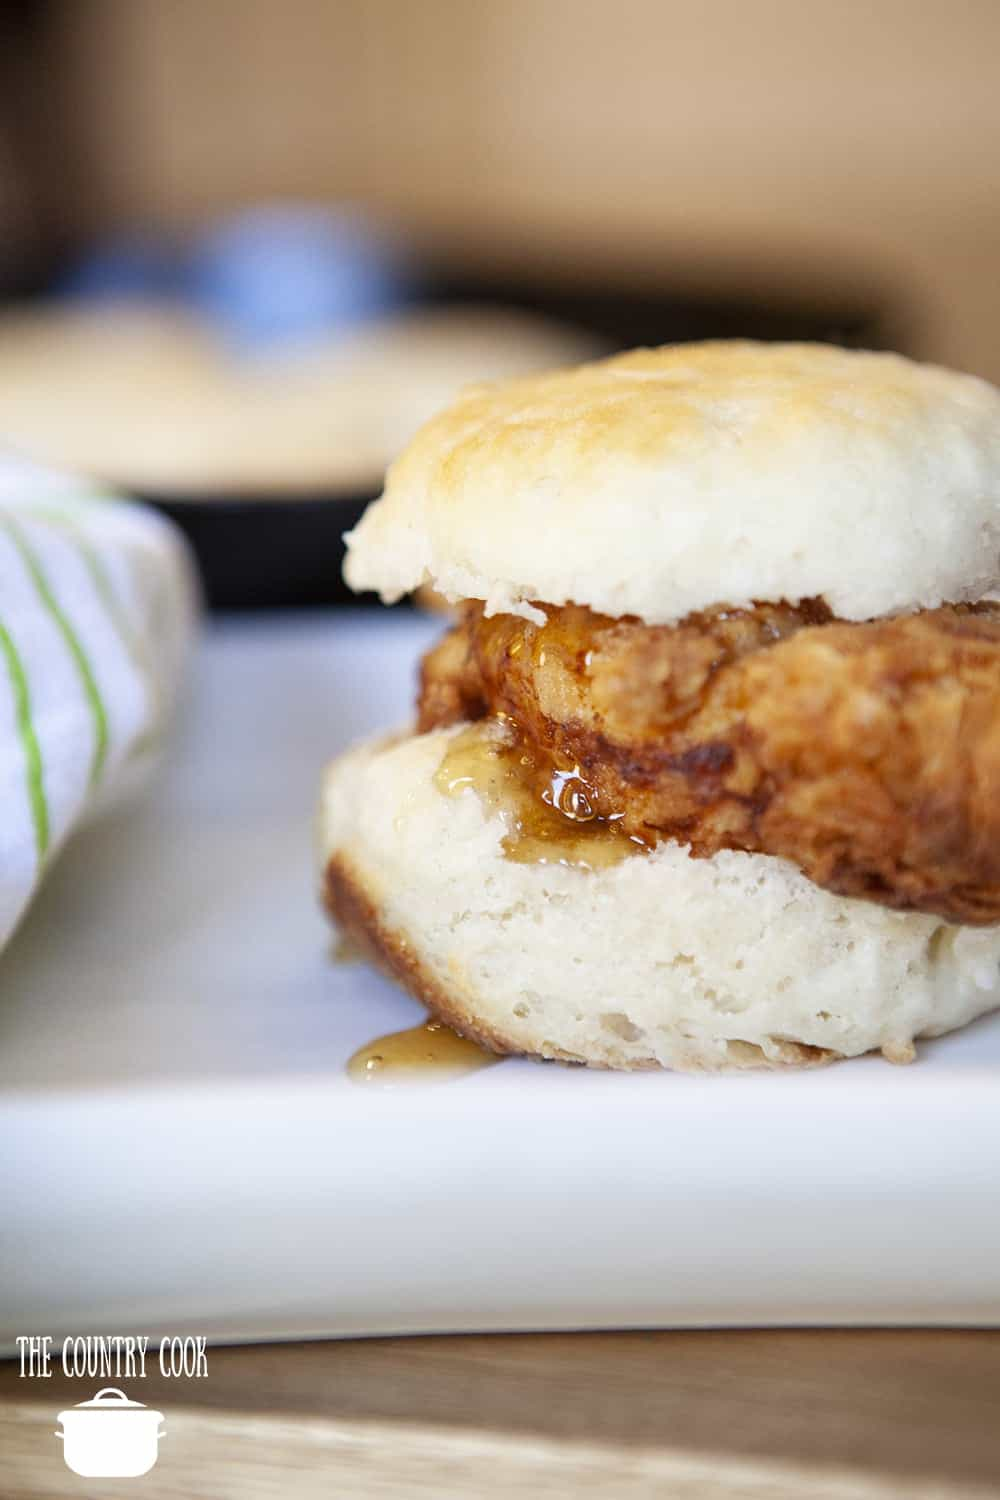 Homemade Fried Chicken Biscuit with honey on a white platter